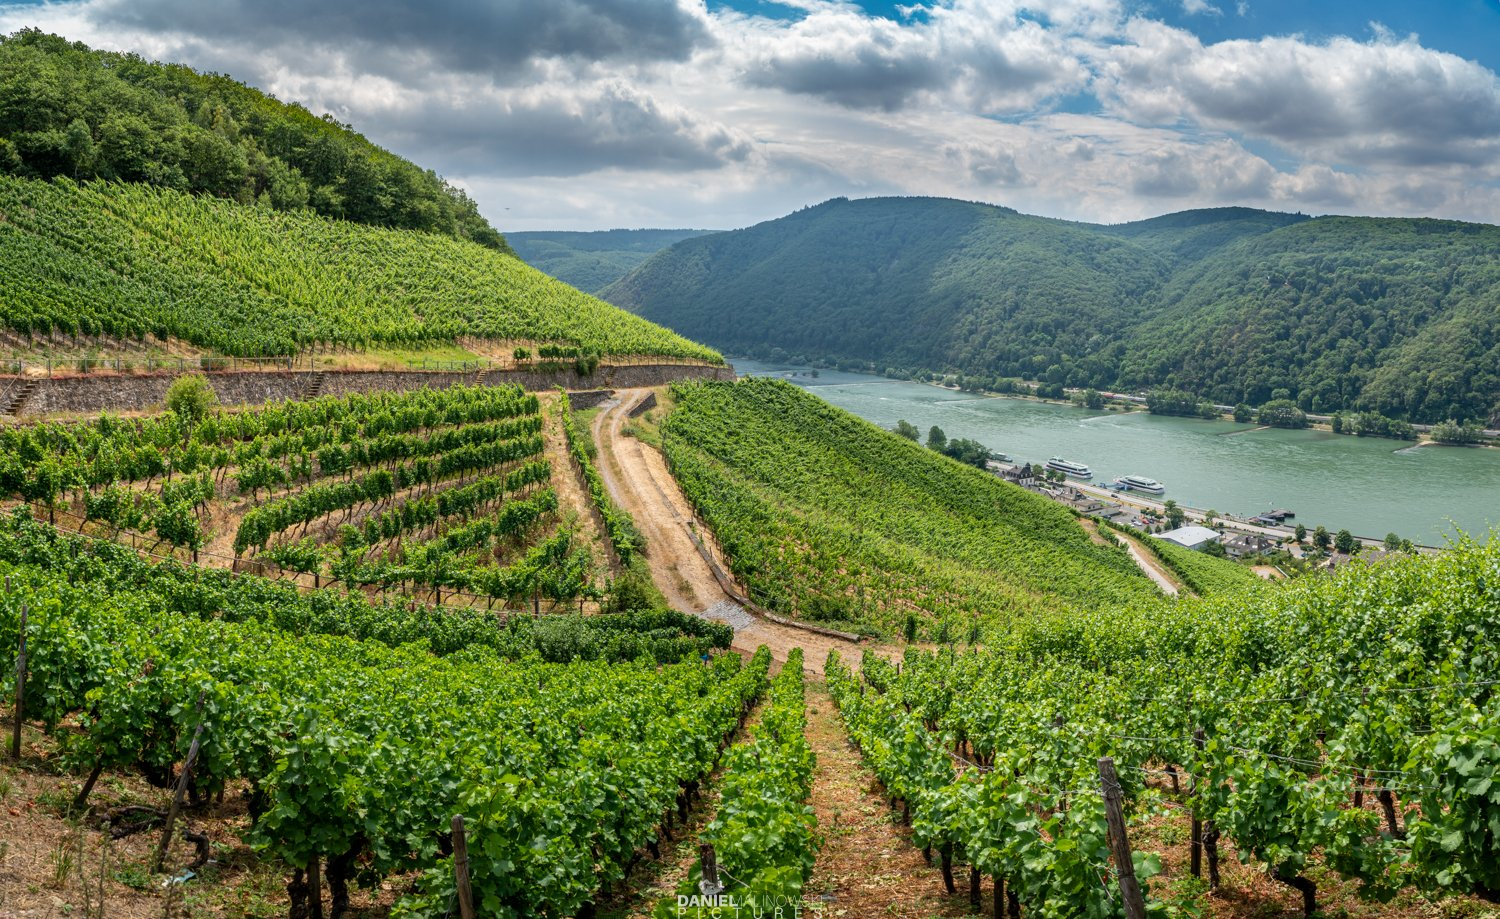 germany, vineyards, landscape, summer, Daniel Malinowski